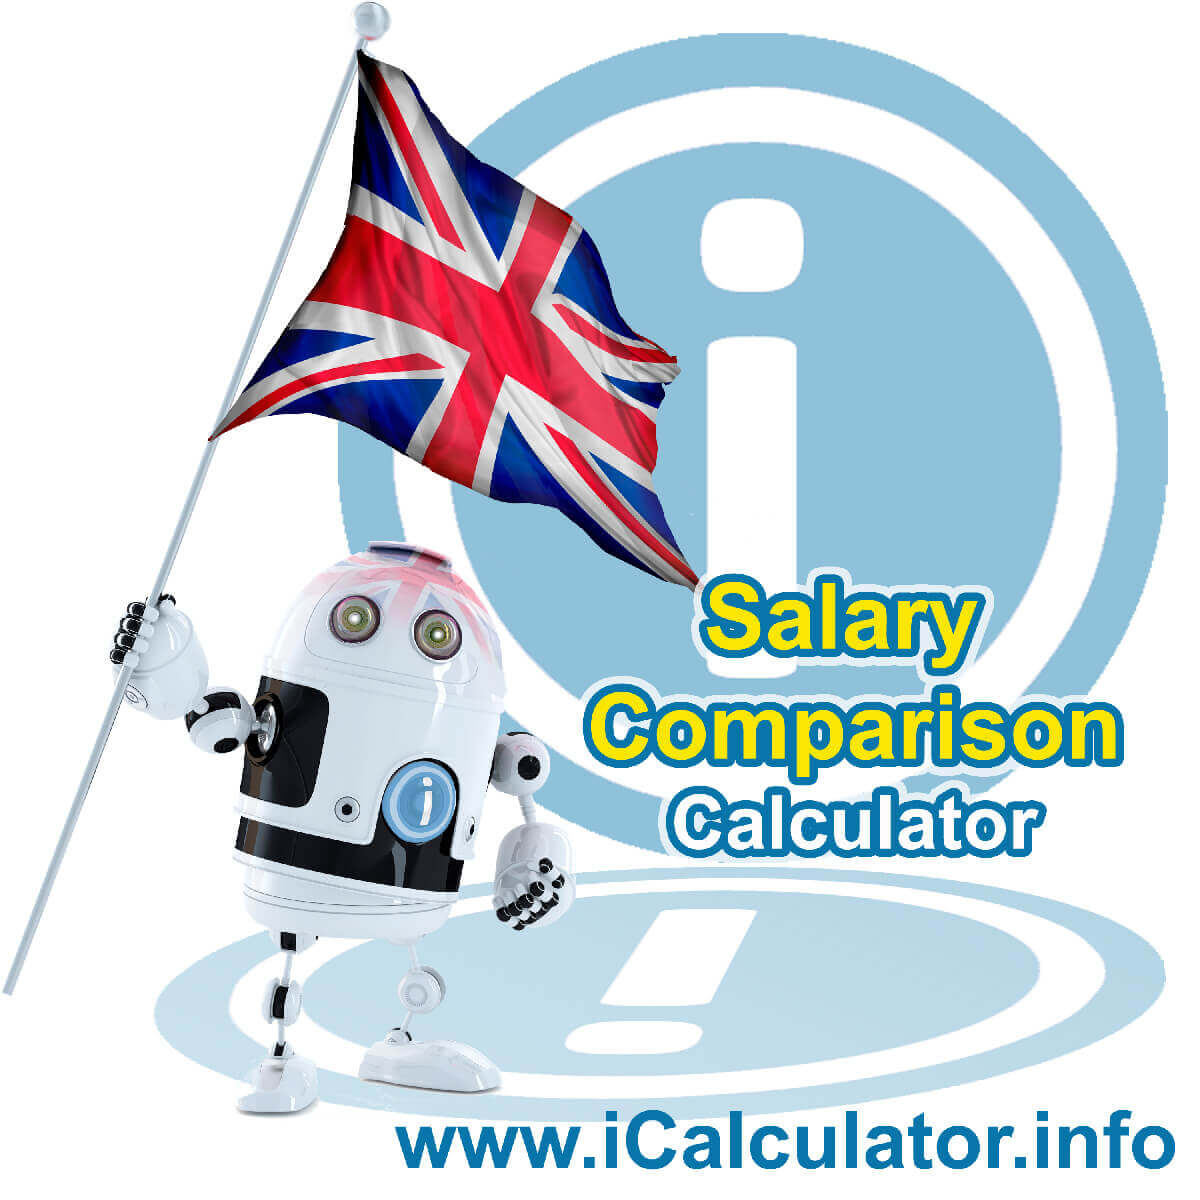 2020 Salary Calculator. This image shows the United Kingdom flag and information relating to the tax formula used in the 2020 Salary Calculator